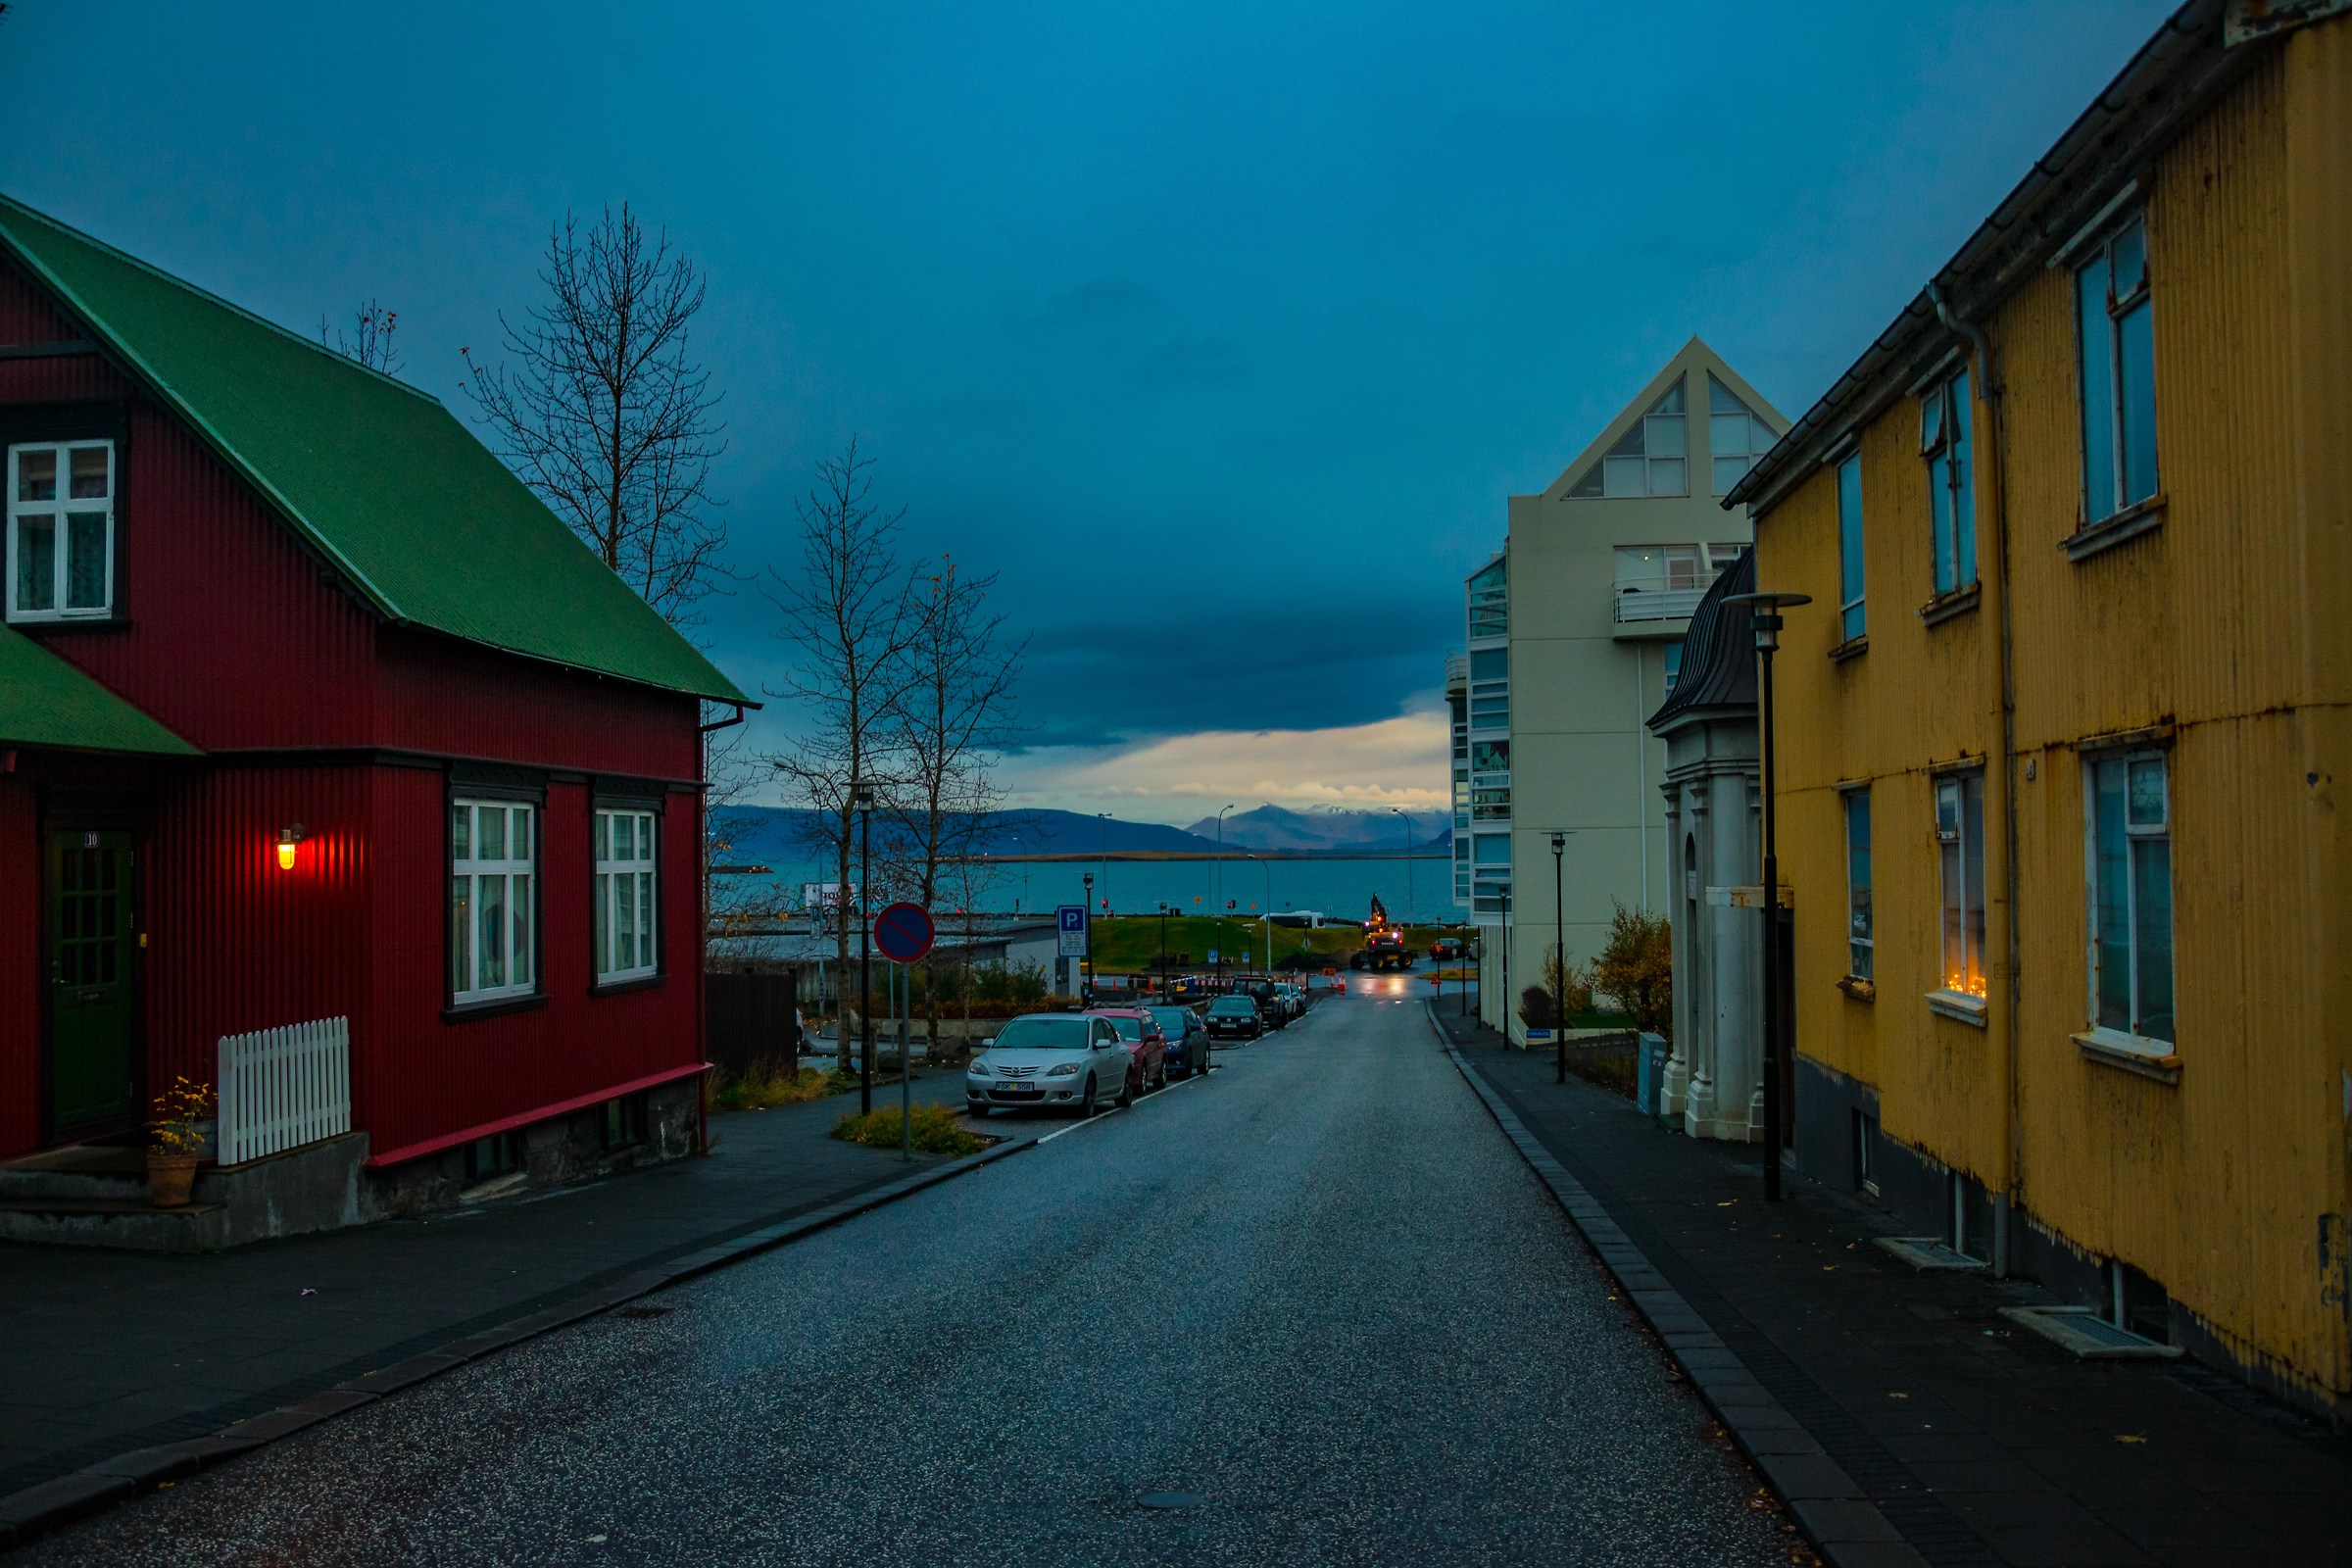 On the streets of Reykjavik...